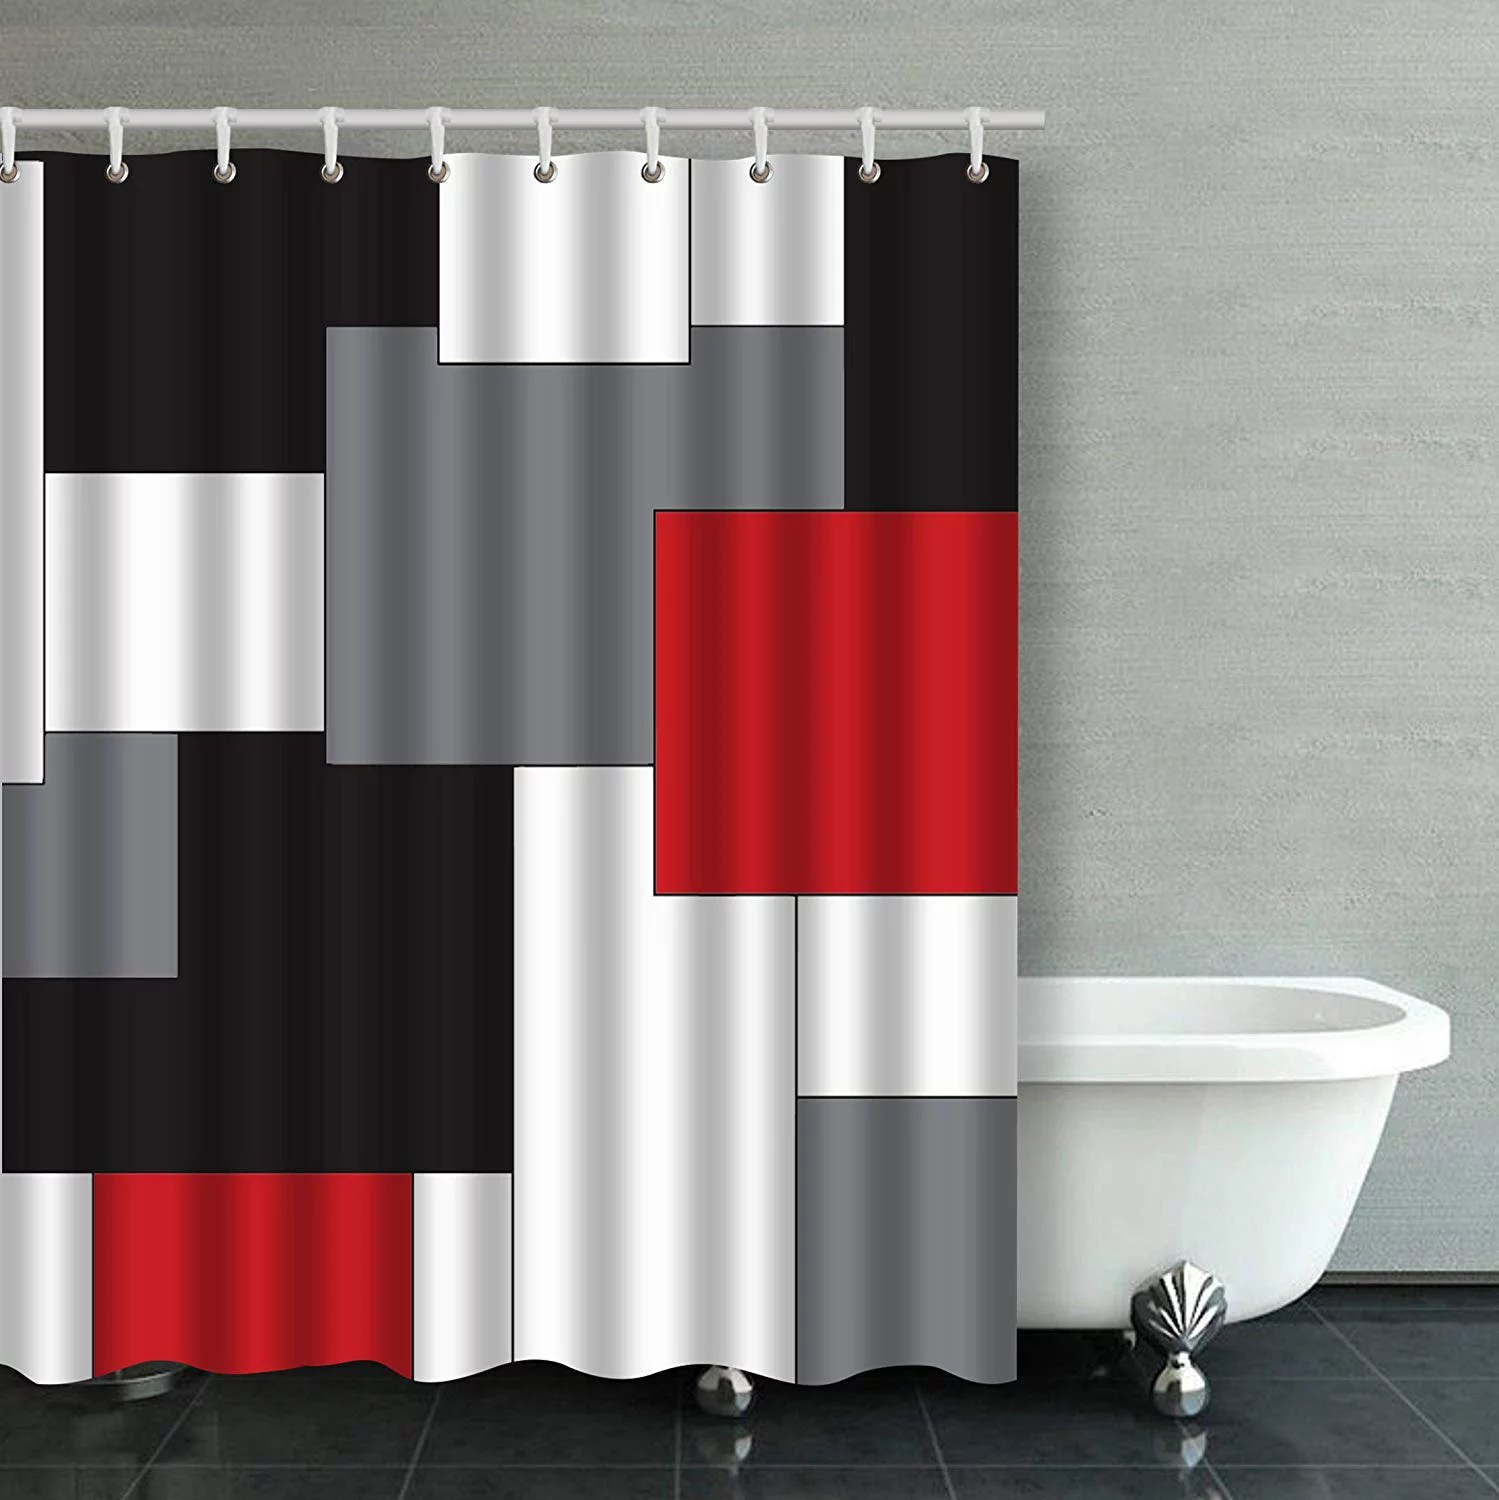 bpbop wavy vertical stripes red black white and grey bathroom shower curtain 66x72 inches walmart com